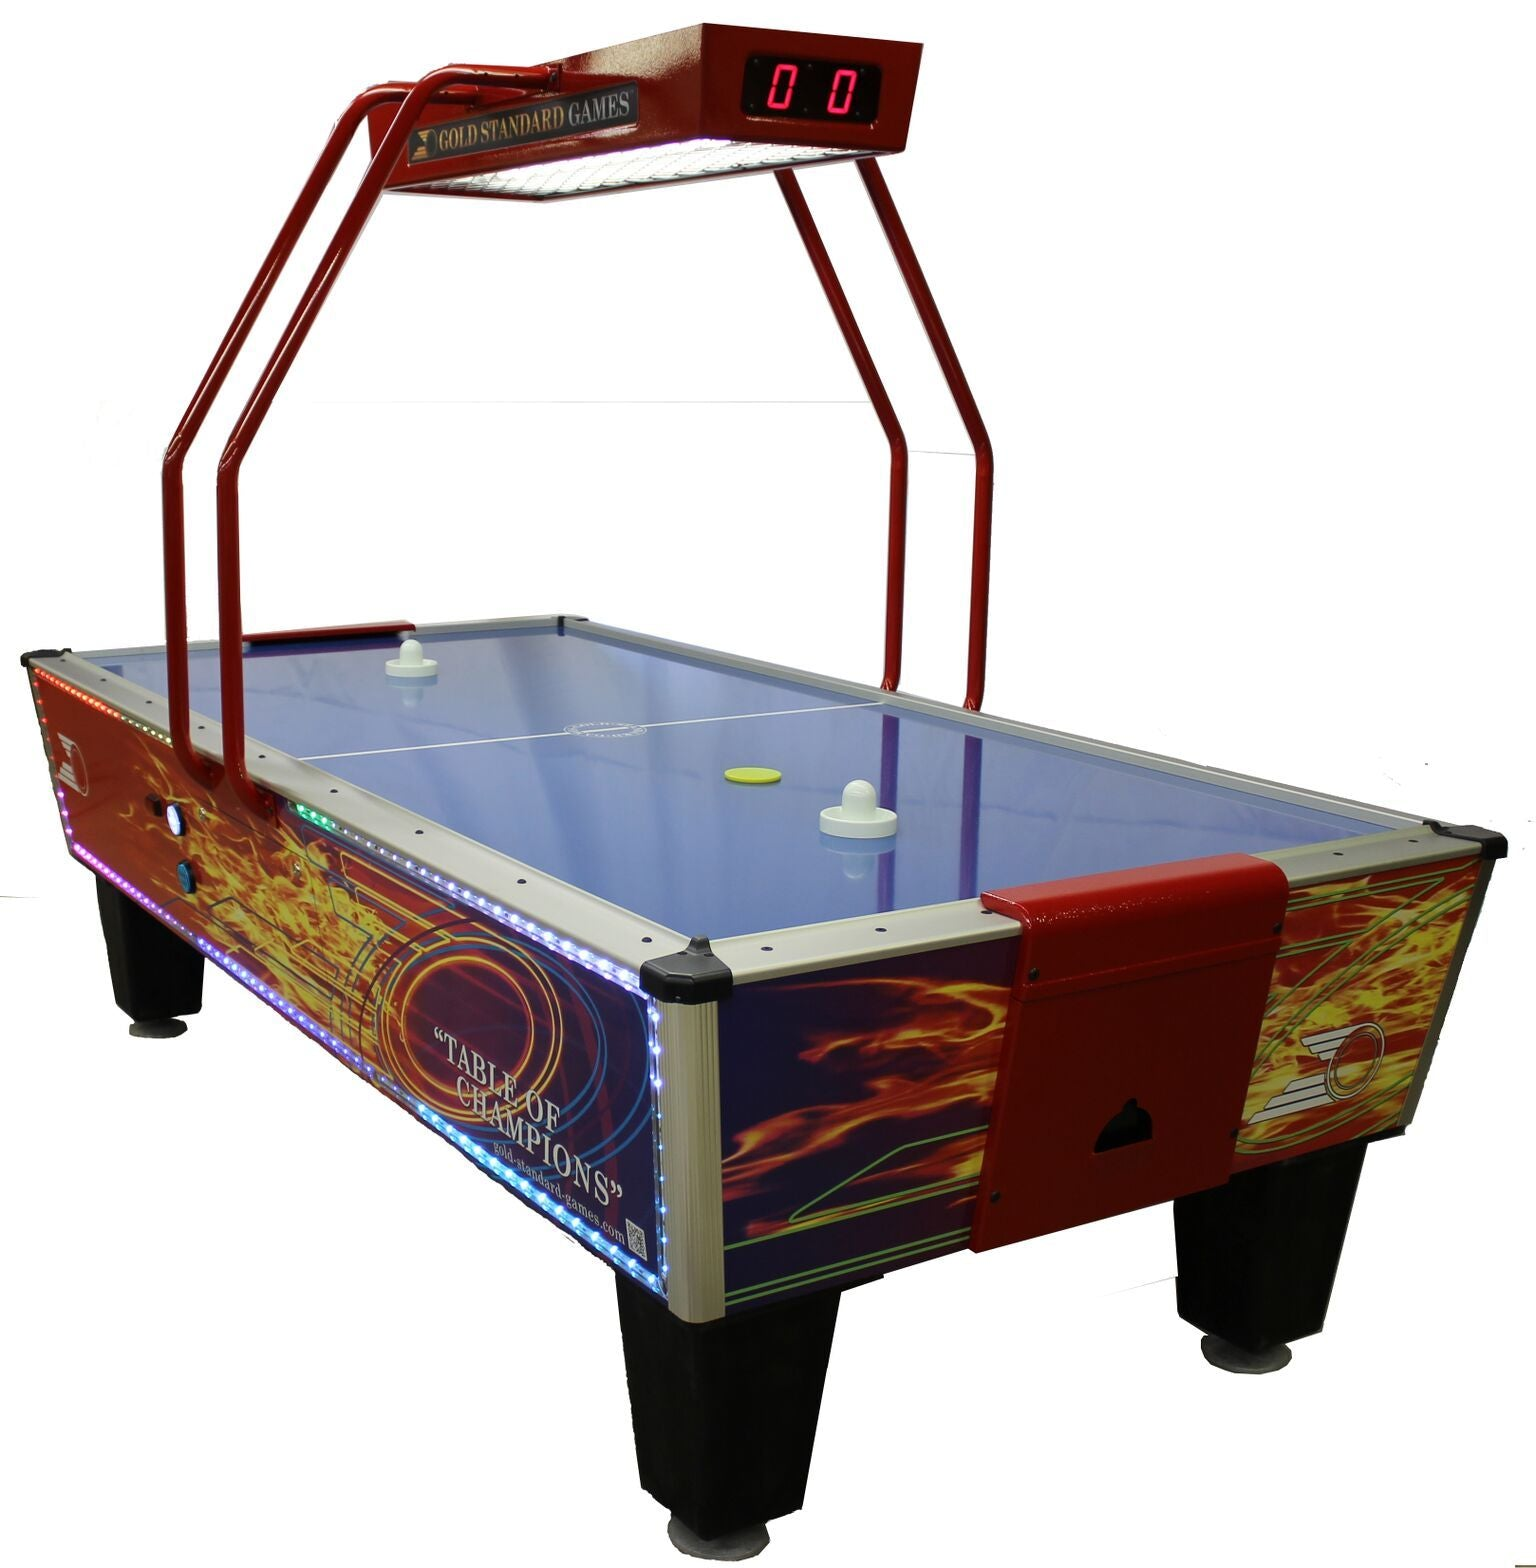 Gold Standard Games Gold Flare Home Elite LED 8ft Air Hockey Table - Gaming Blaze